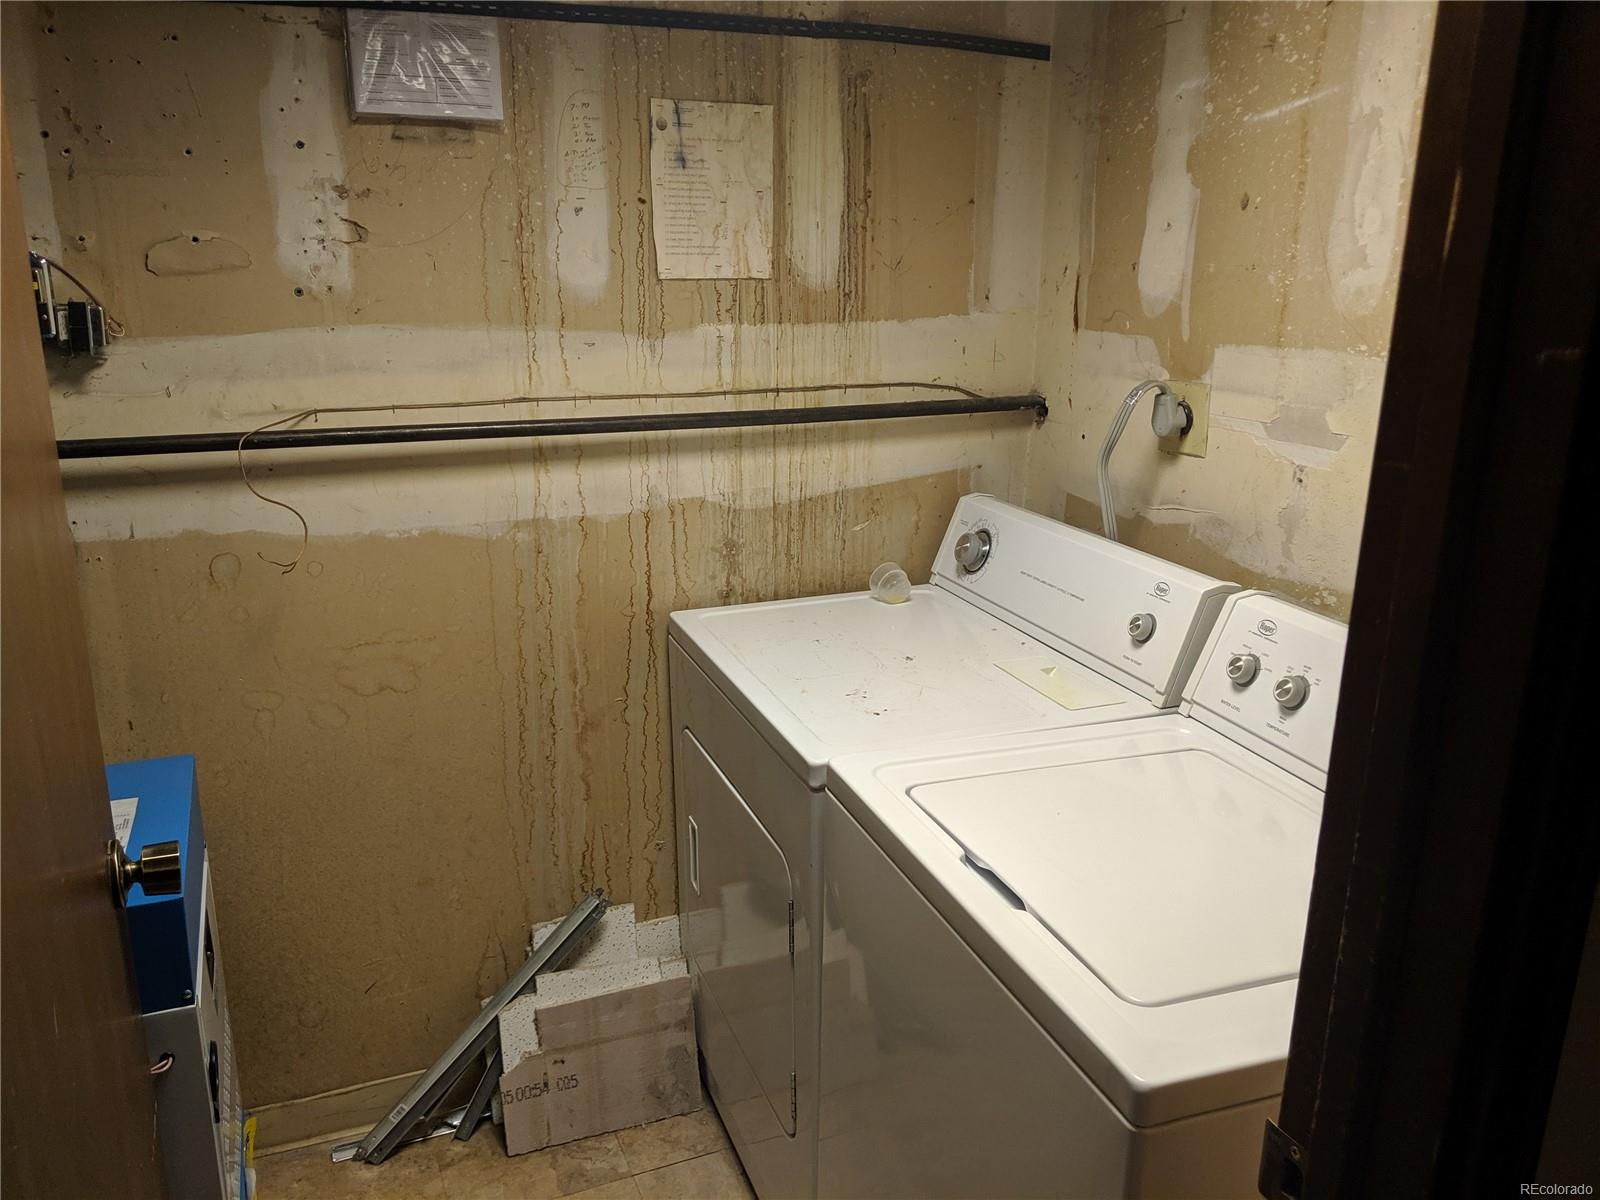 Utility room and laundry room on same level as bedrooms.